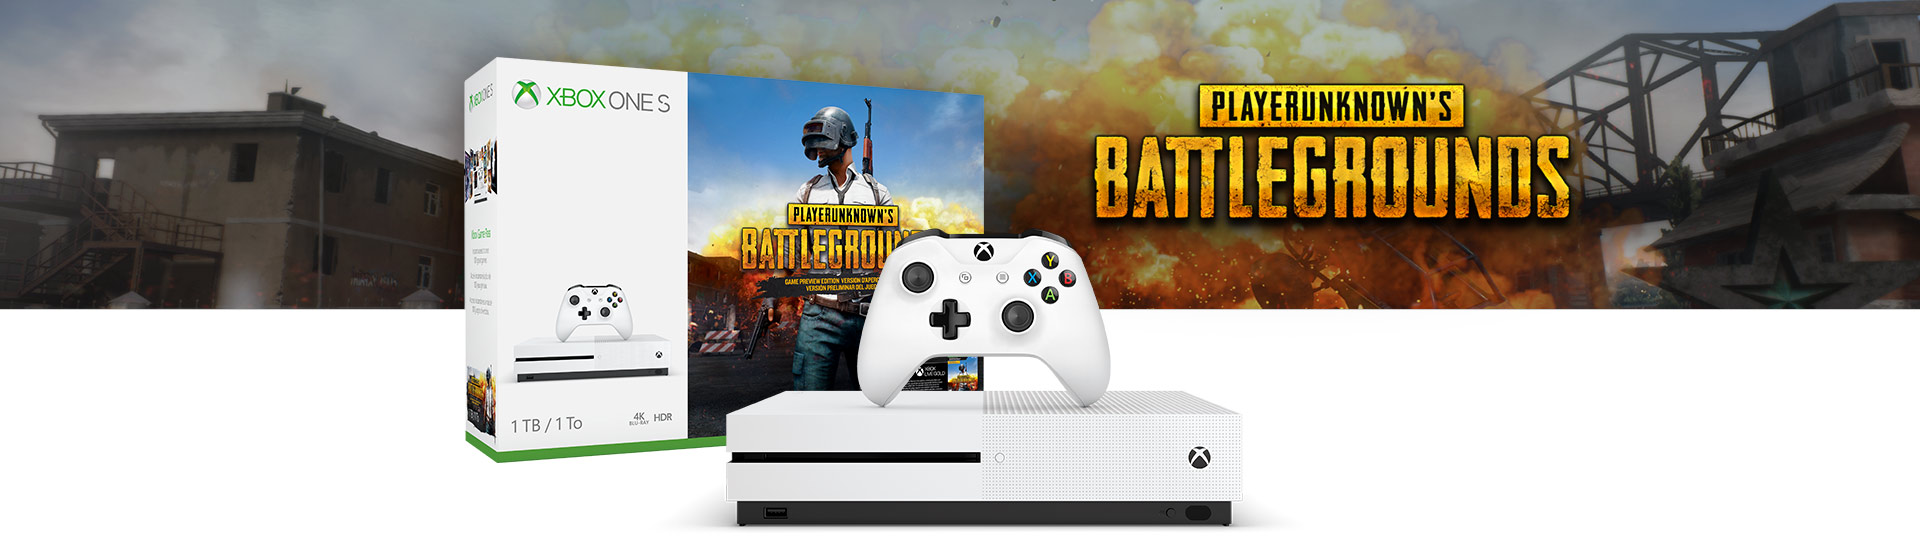 Updated Microsoft Announces Pubg Xbox One S Bundle Launches On